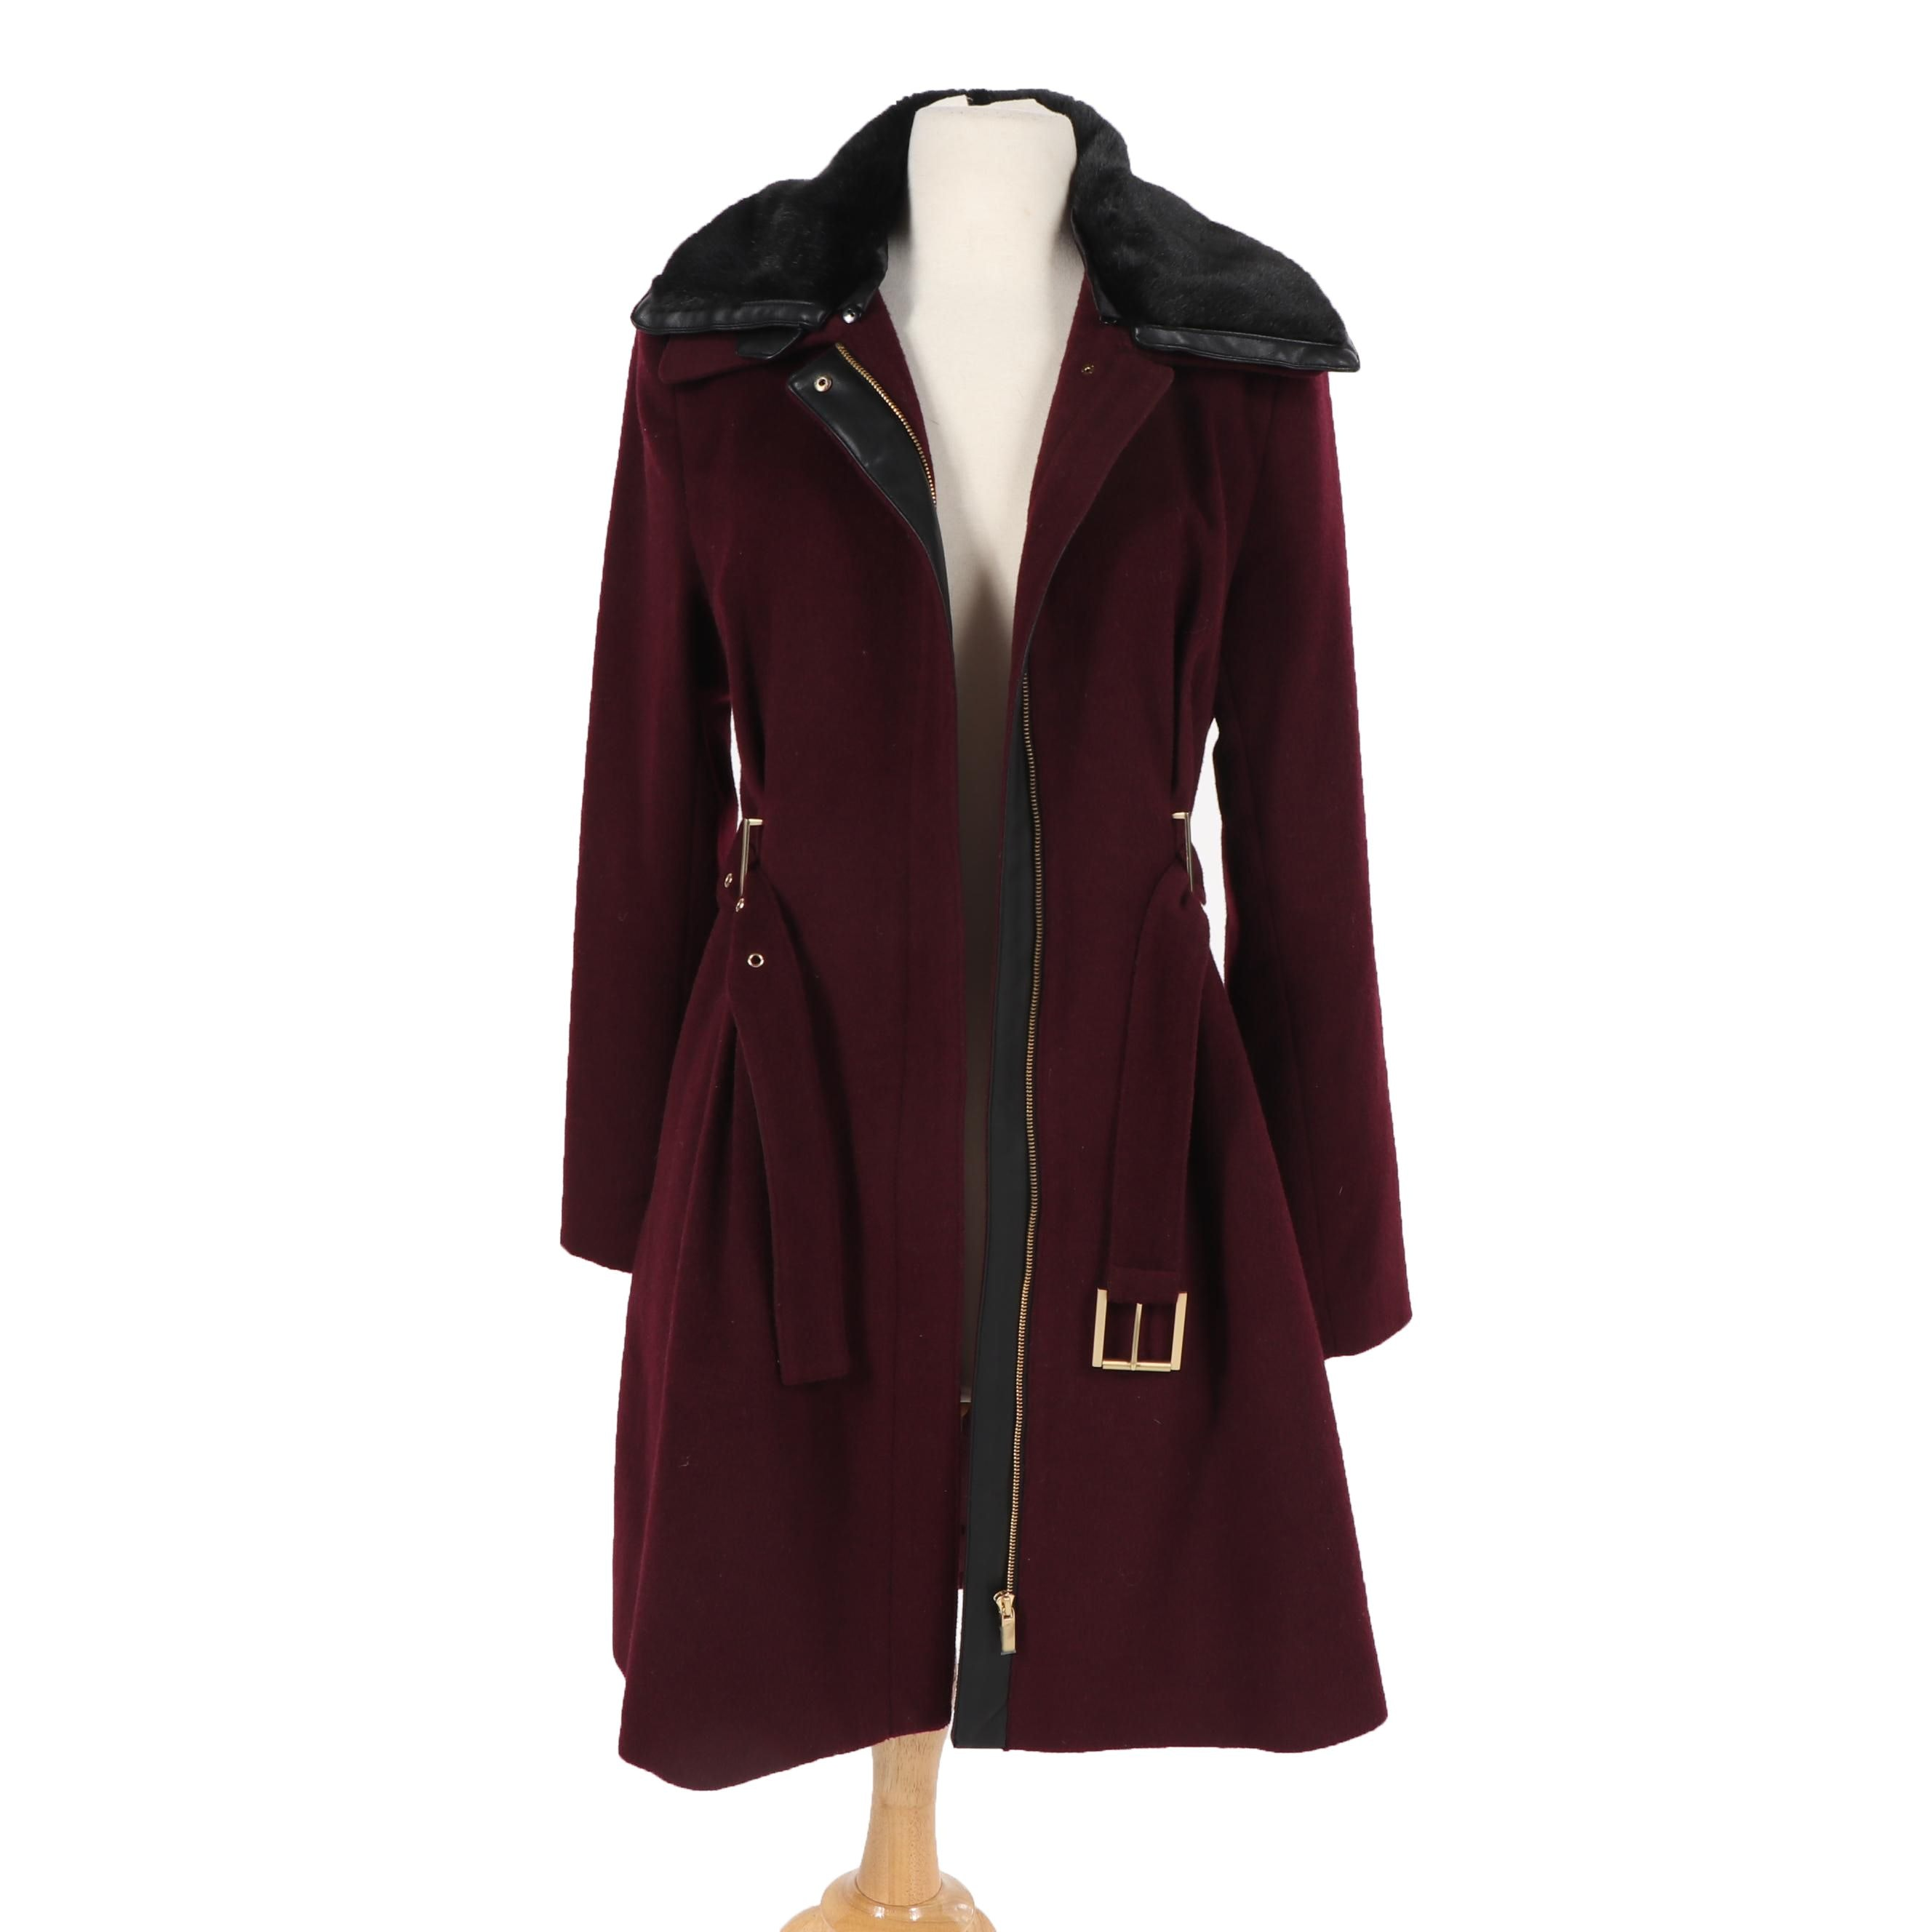 Belle Badgley Mischka Burgundy Wool Coat with Removable Faux Fur Collar